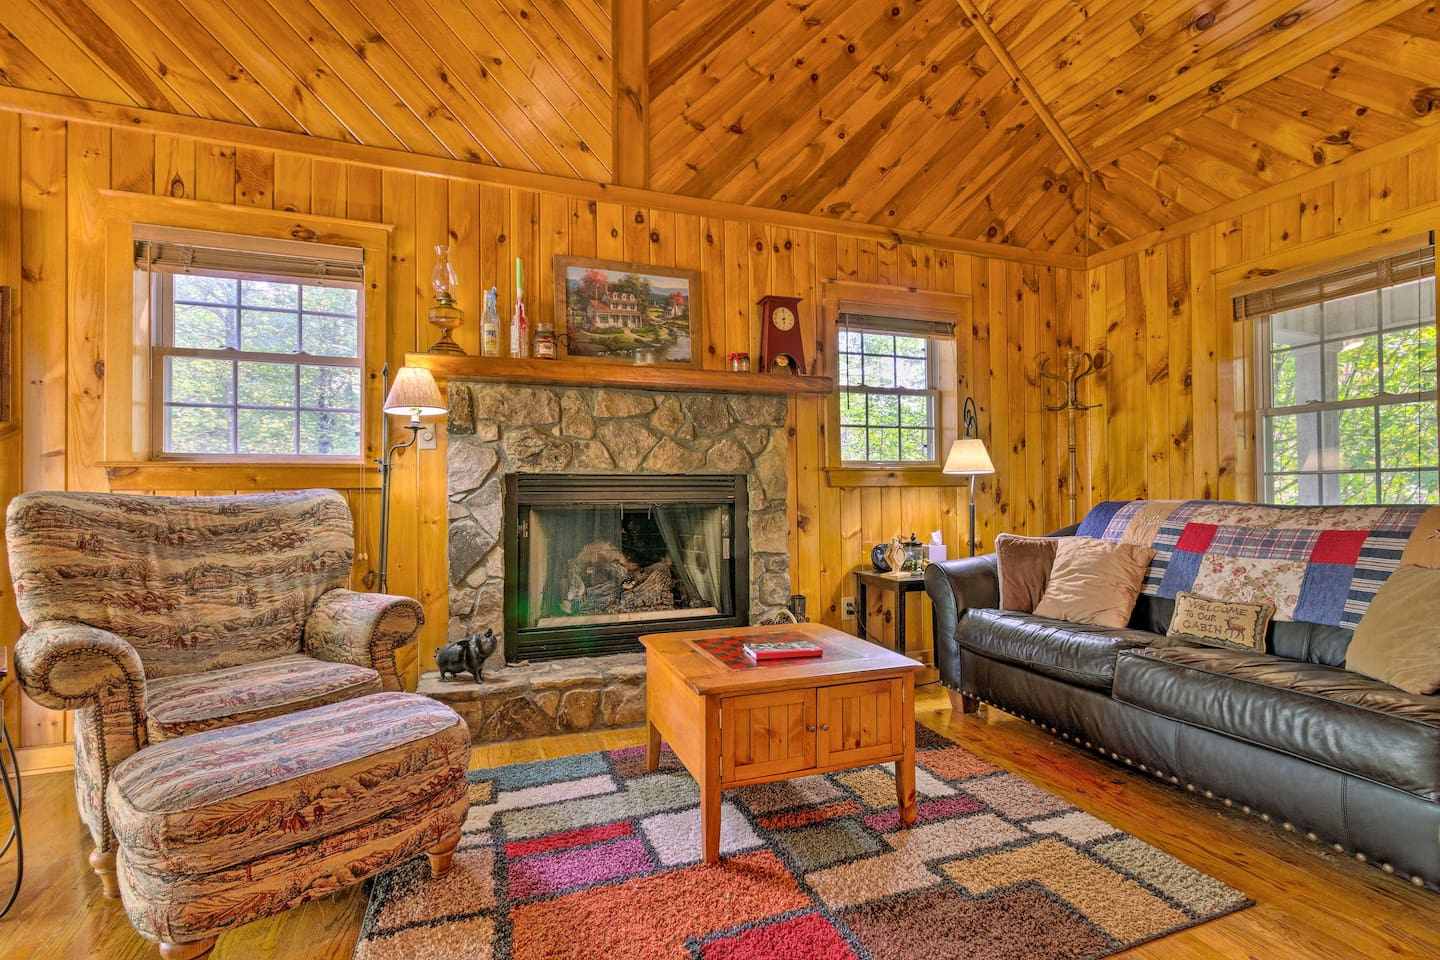 Make this cozy cabin your next North Carolina home base!